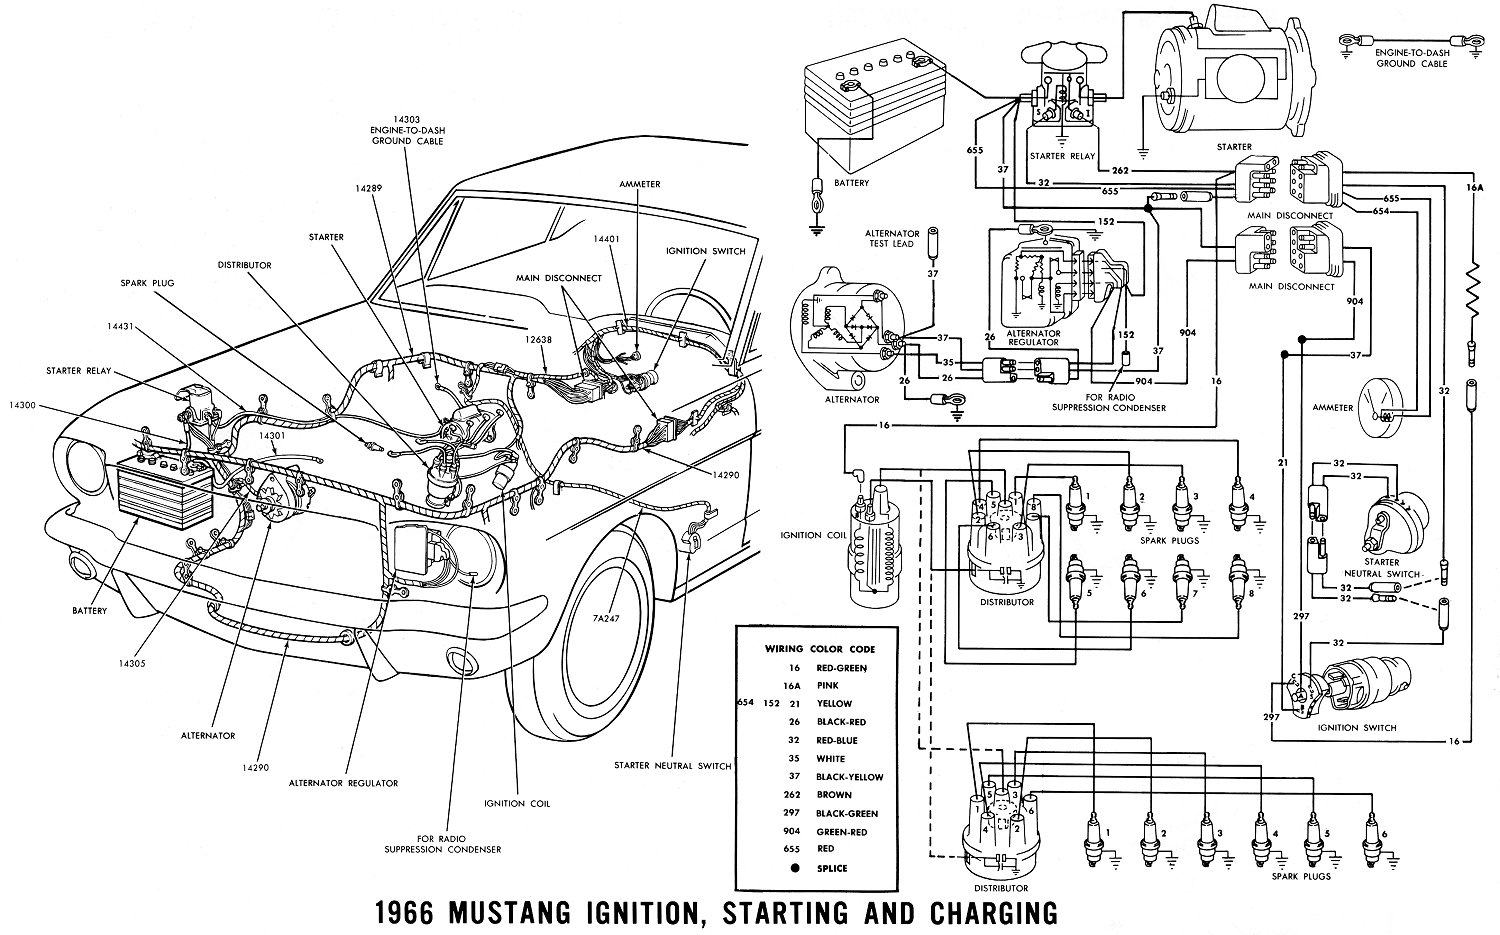 1985 ford ignition system wiring diagram pdf with Wiring on 81094 Power Steering 97 Cummins further I Love These Types Of Diagrams moreover Century Battery Wiring Diagram as well YaBB moreover Wiring.